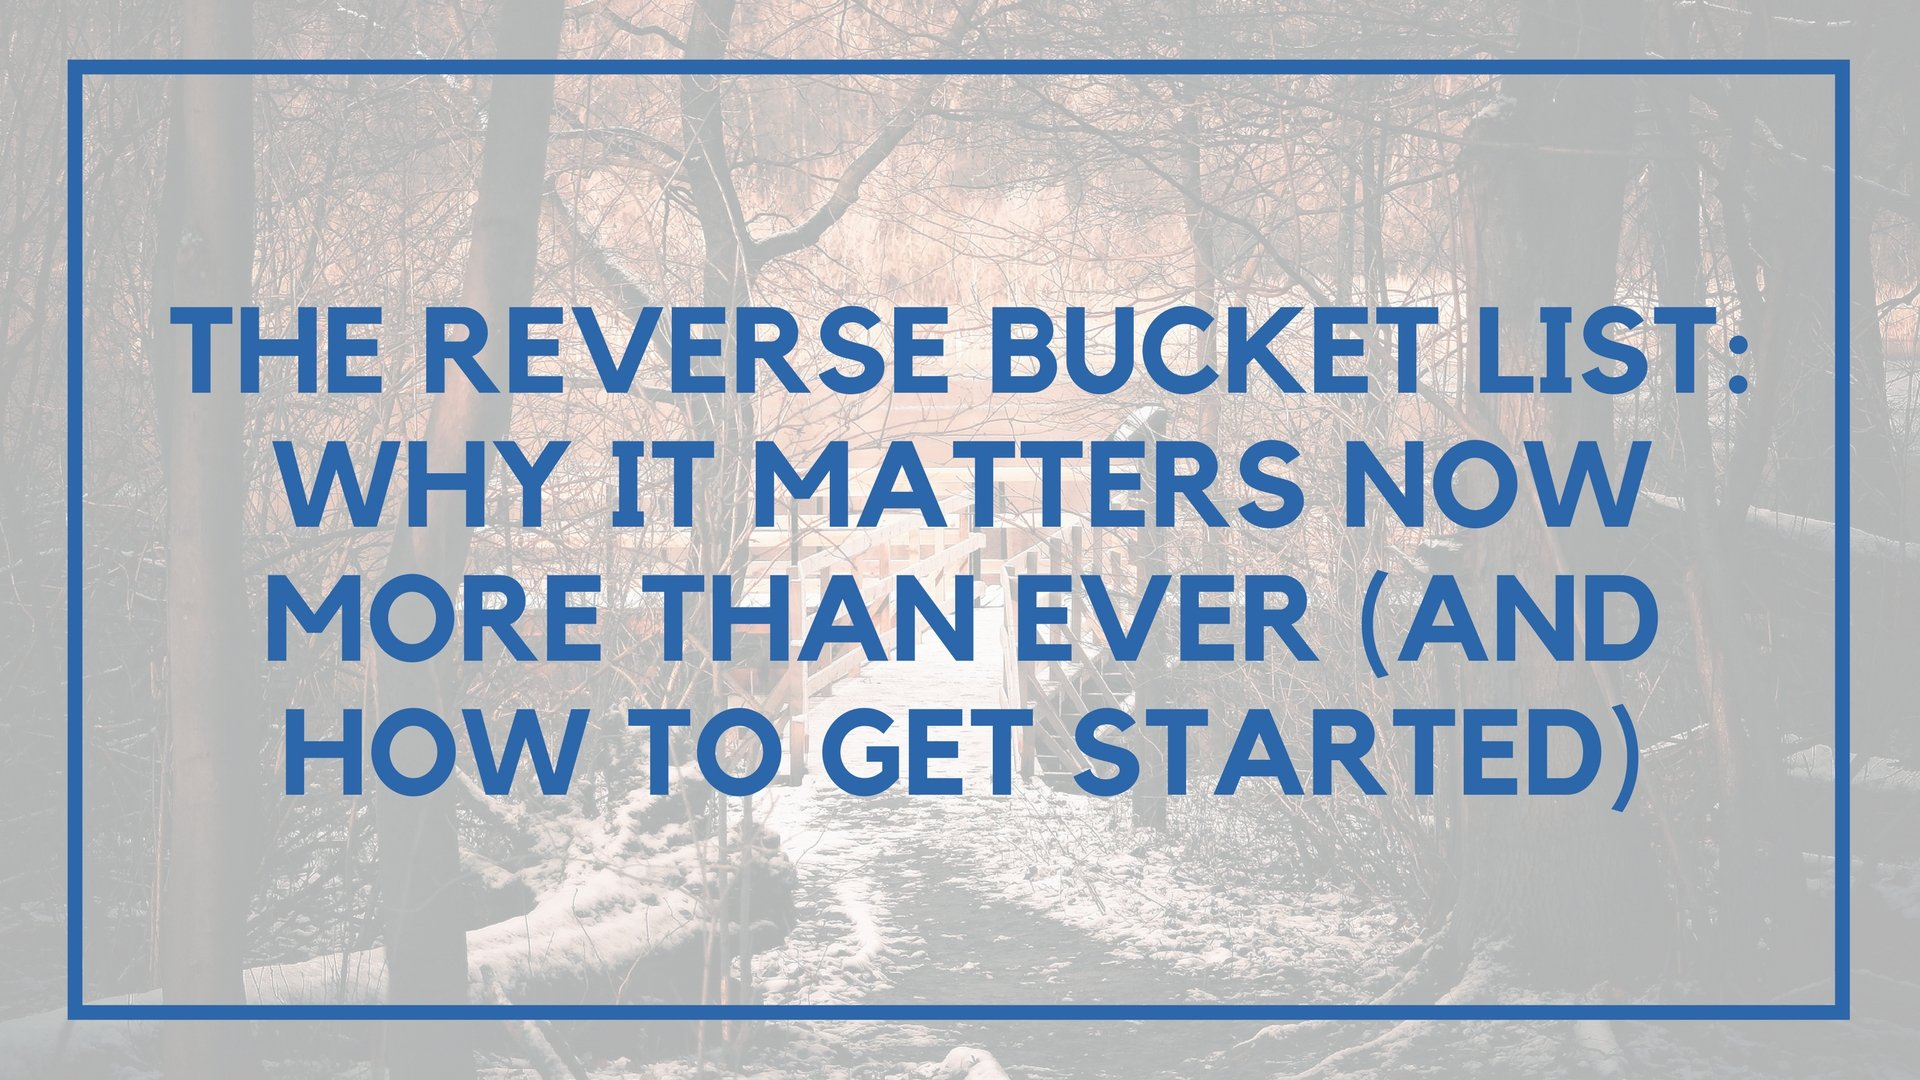 The Reverse Bucket List: Why It Matters Now More Than Ever (And How to Get Started)